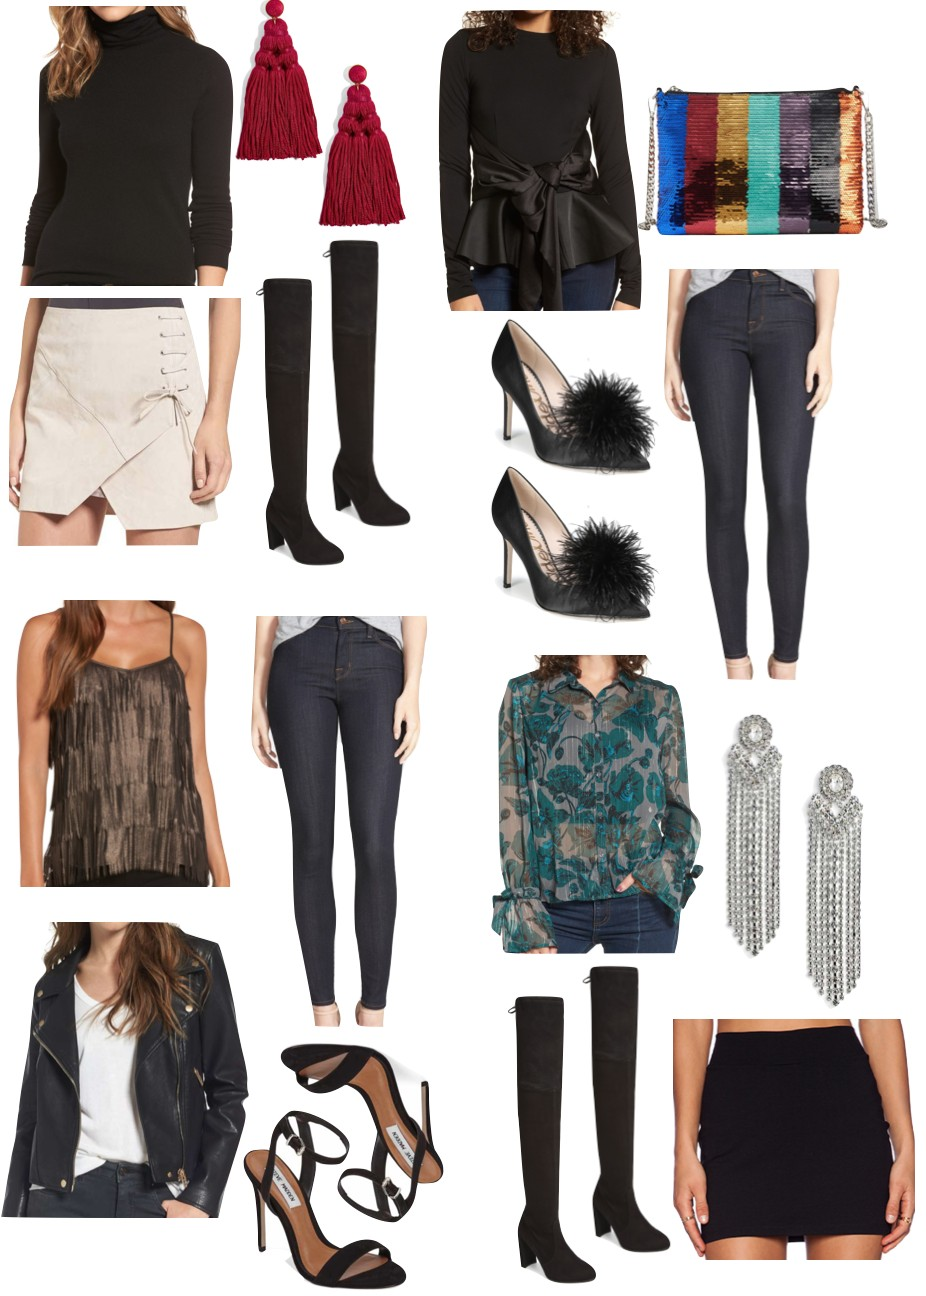 48dddf72b985a Click on image above to shop 4 dressy casual holiday looks. Below I'm  showing 4 of the always classic little black dress (lbd)